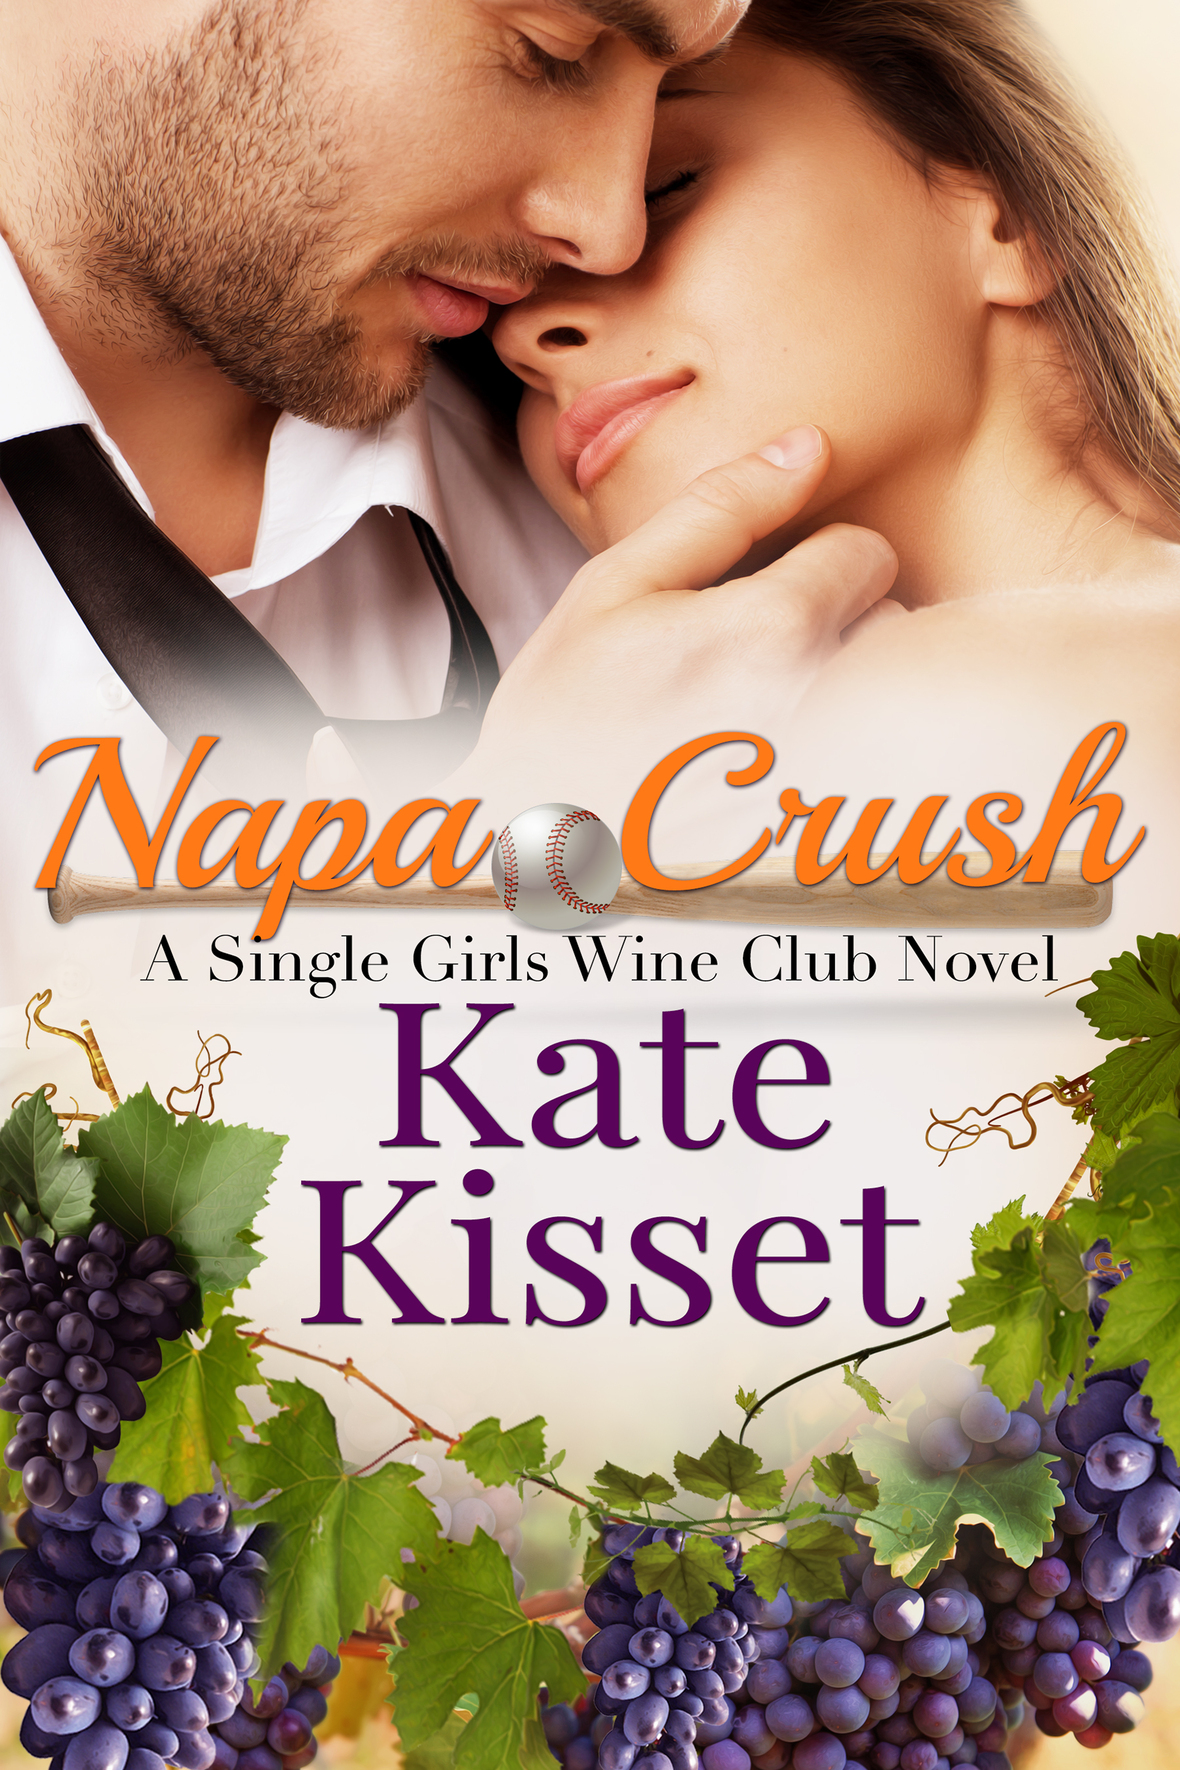 napa crush high res